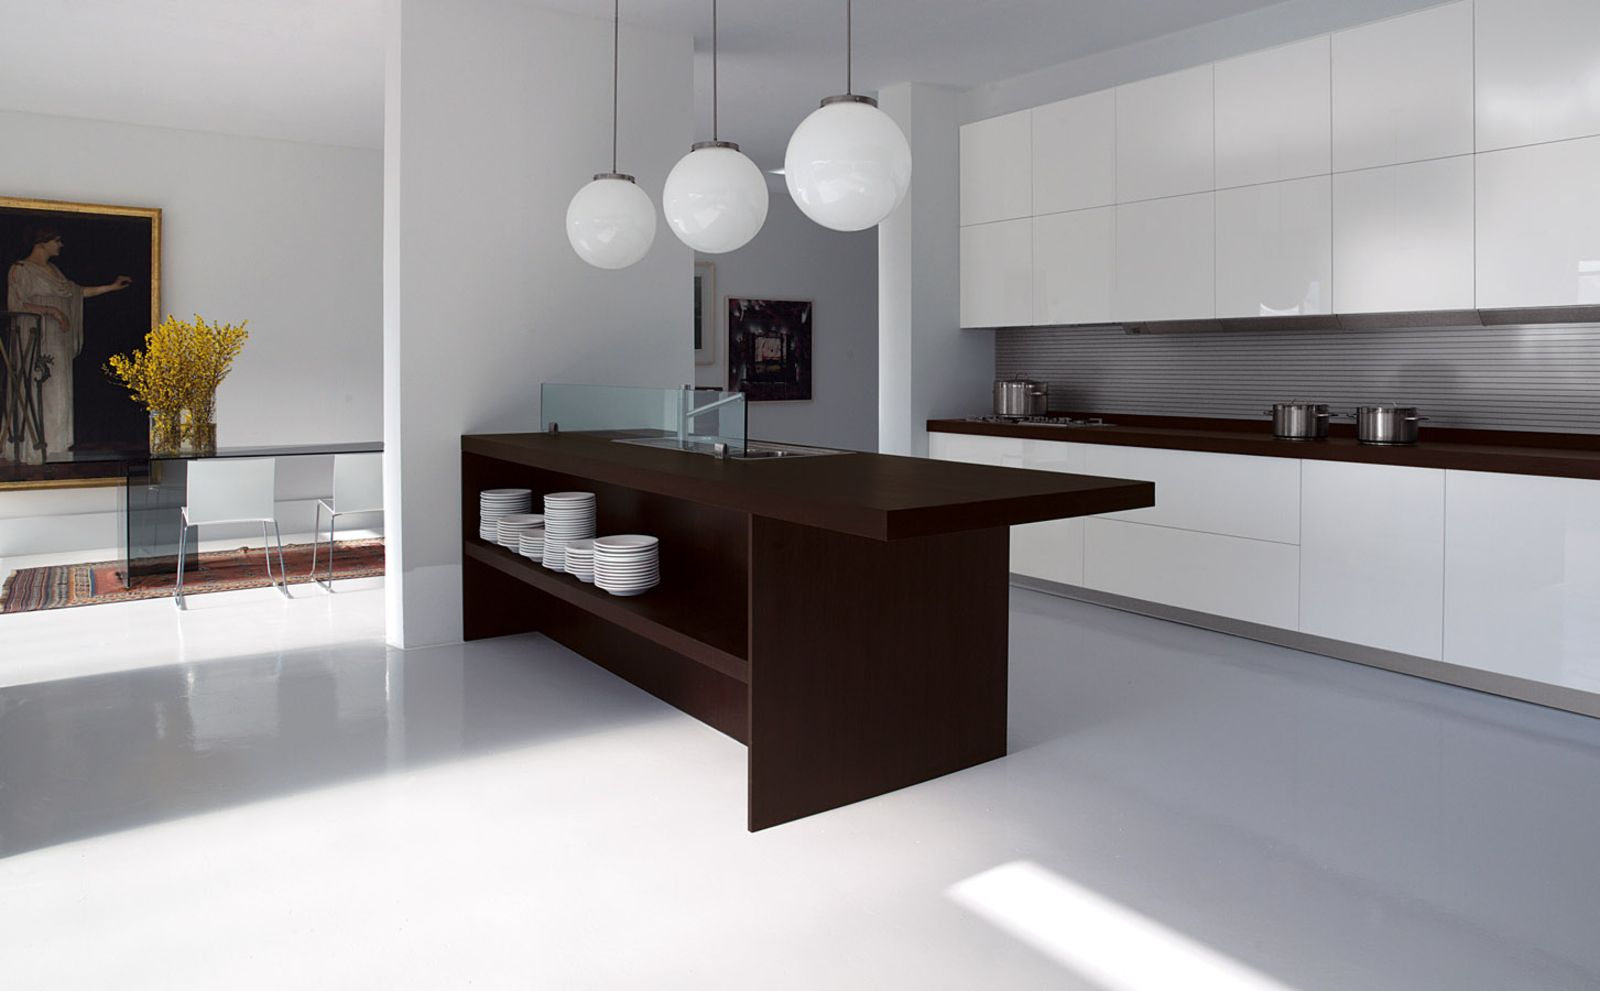 Minimalist Contemporary Kitchen Design  Remodel Ideas  Pinterest Interesting Modern Kitchen Design For Small House Decorating Inspiration